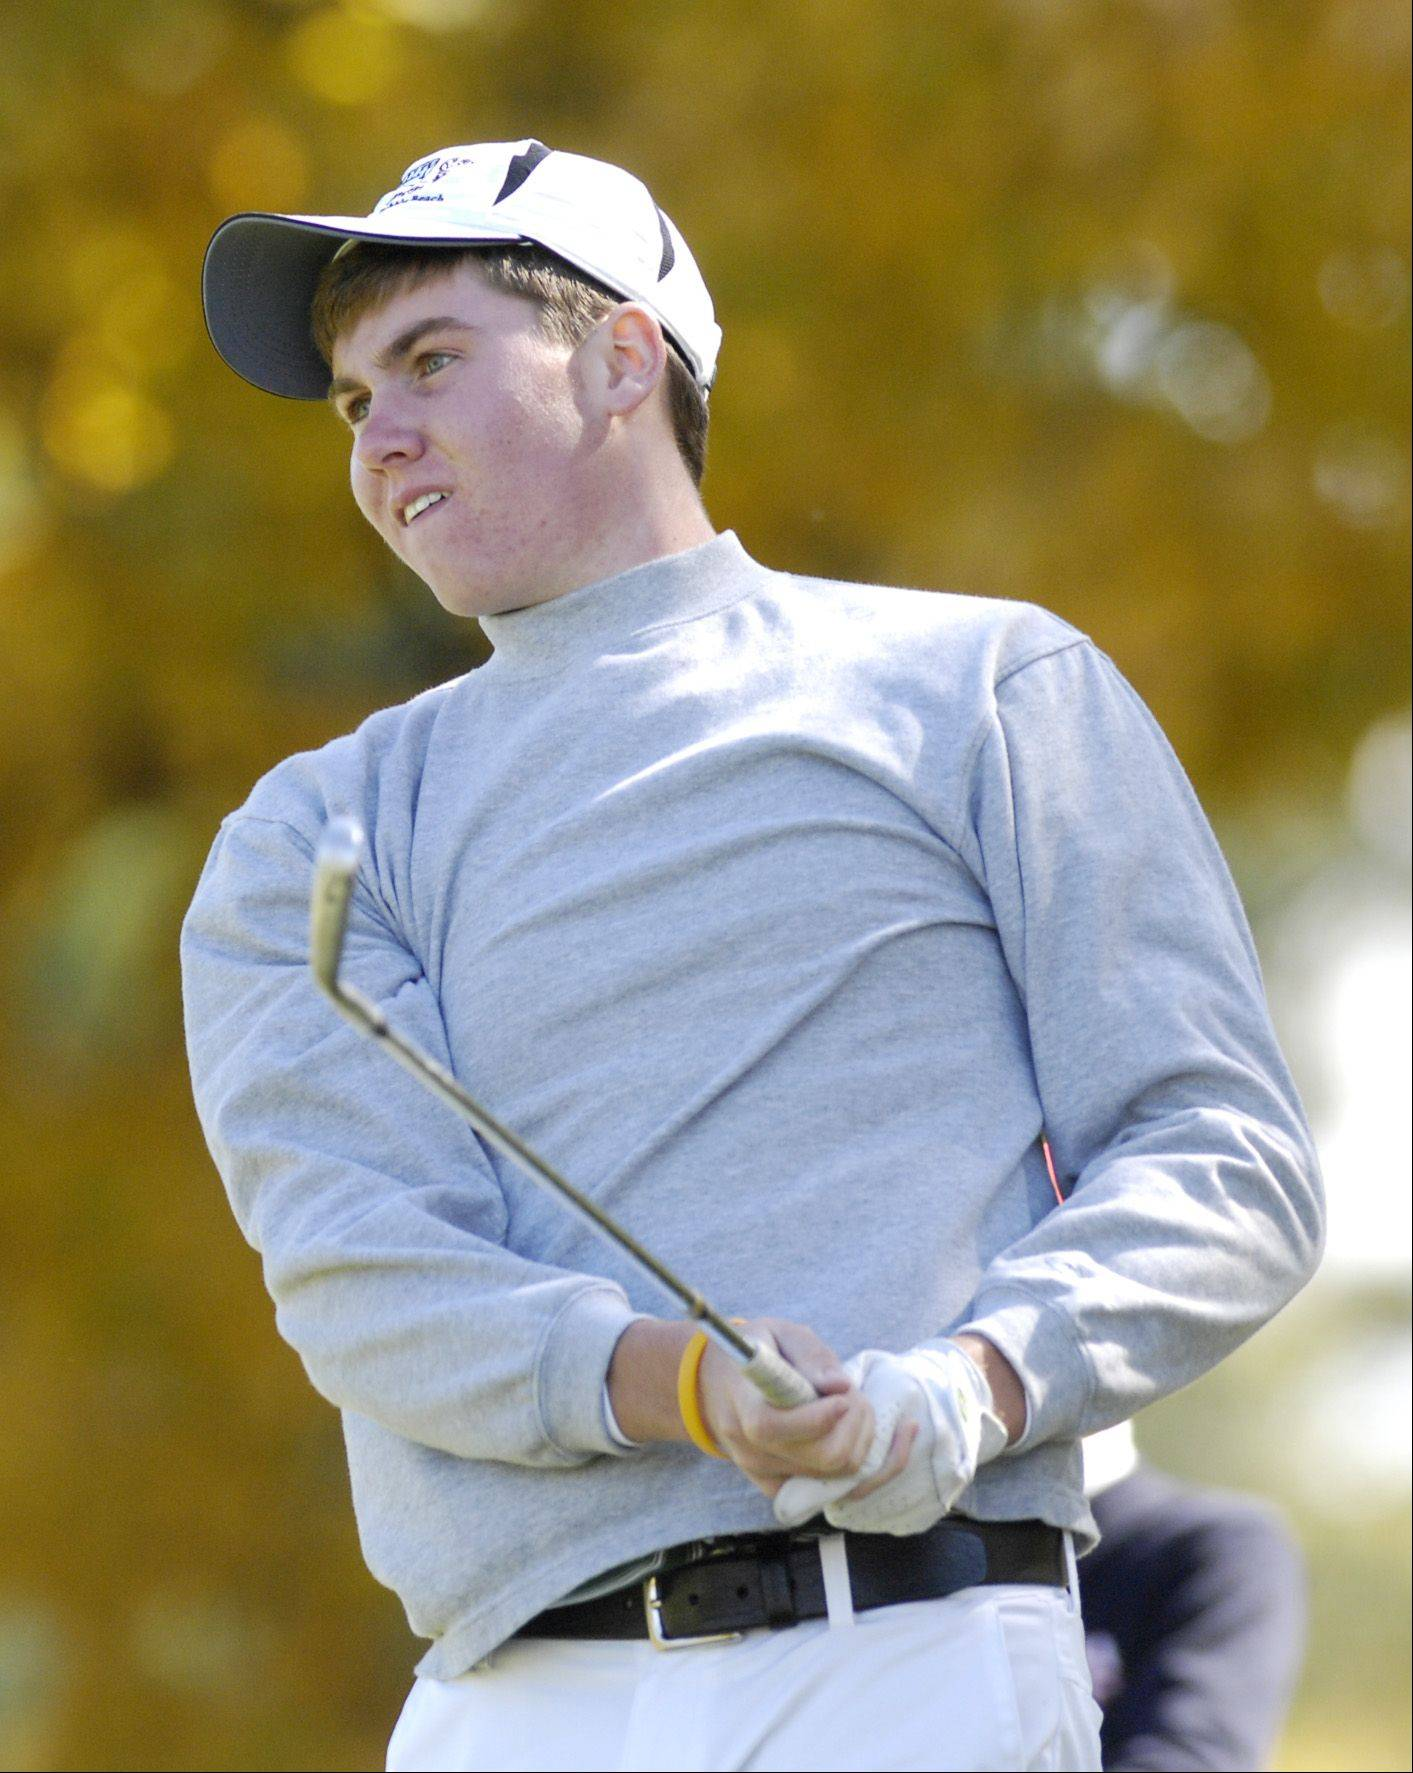 Jason Marrs of Waubonsie Valley tees off during the St. Charles East boys varsity golf sectional at St. Andrews Golf Club in West Chicago, Monday.